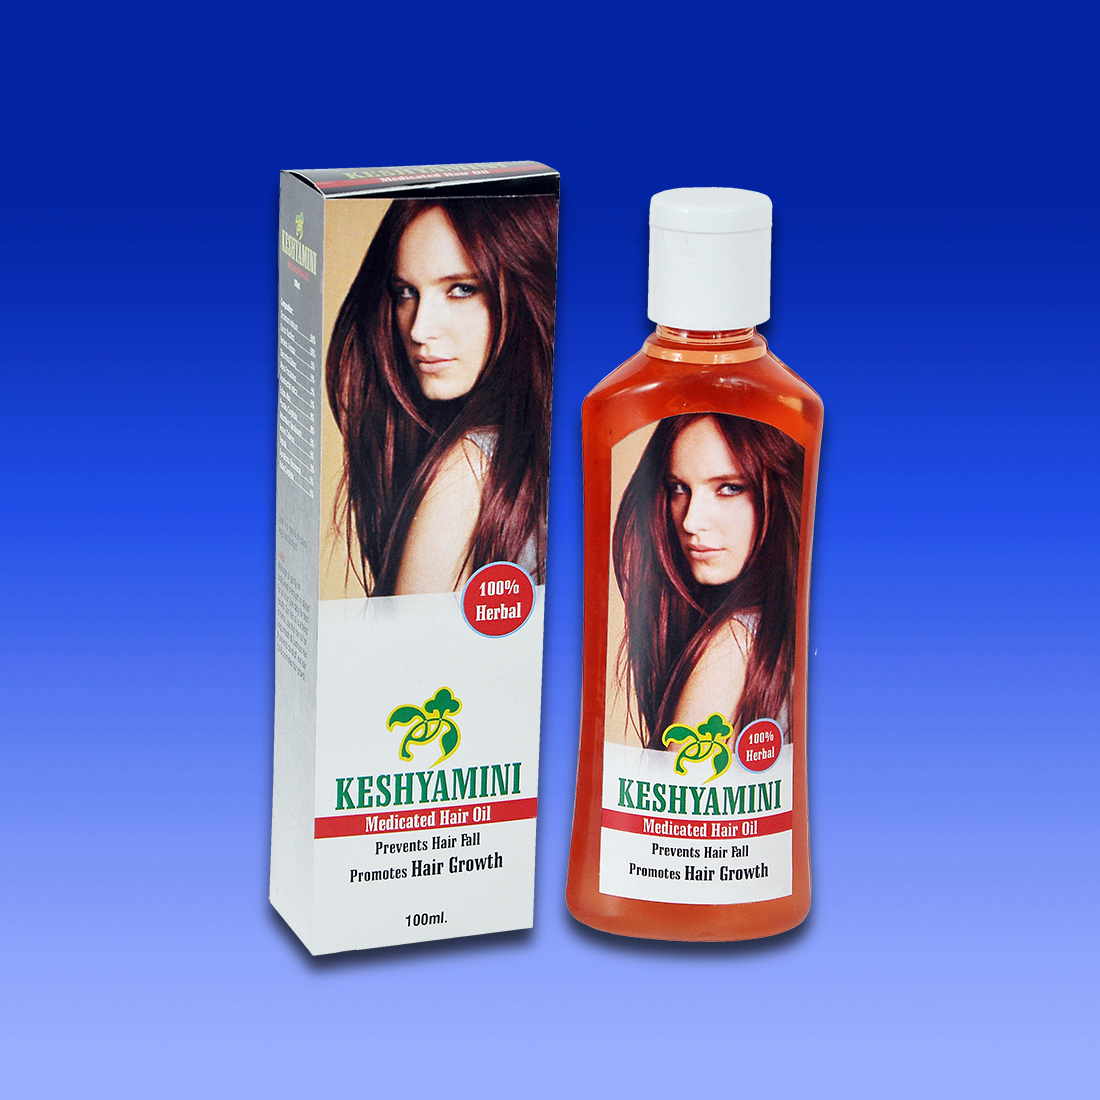 KESHYAMINI HAIR OIL